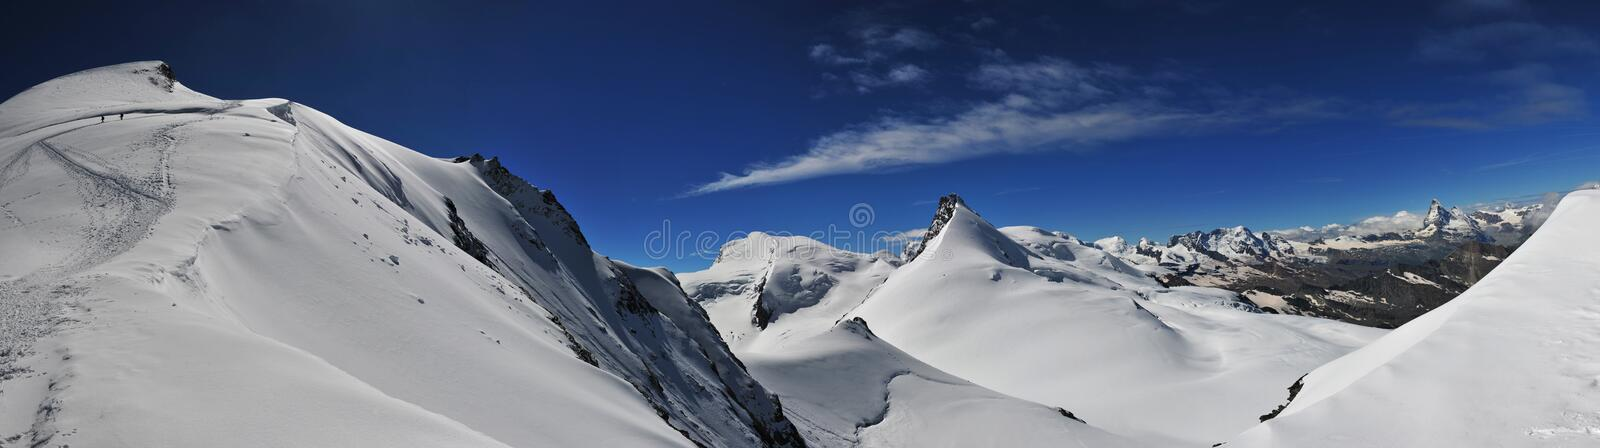 Allalinhorn and Rimpfischhorn royalty free stock images